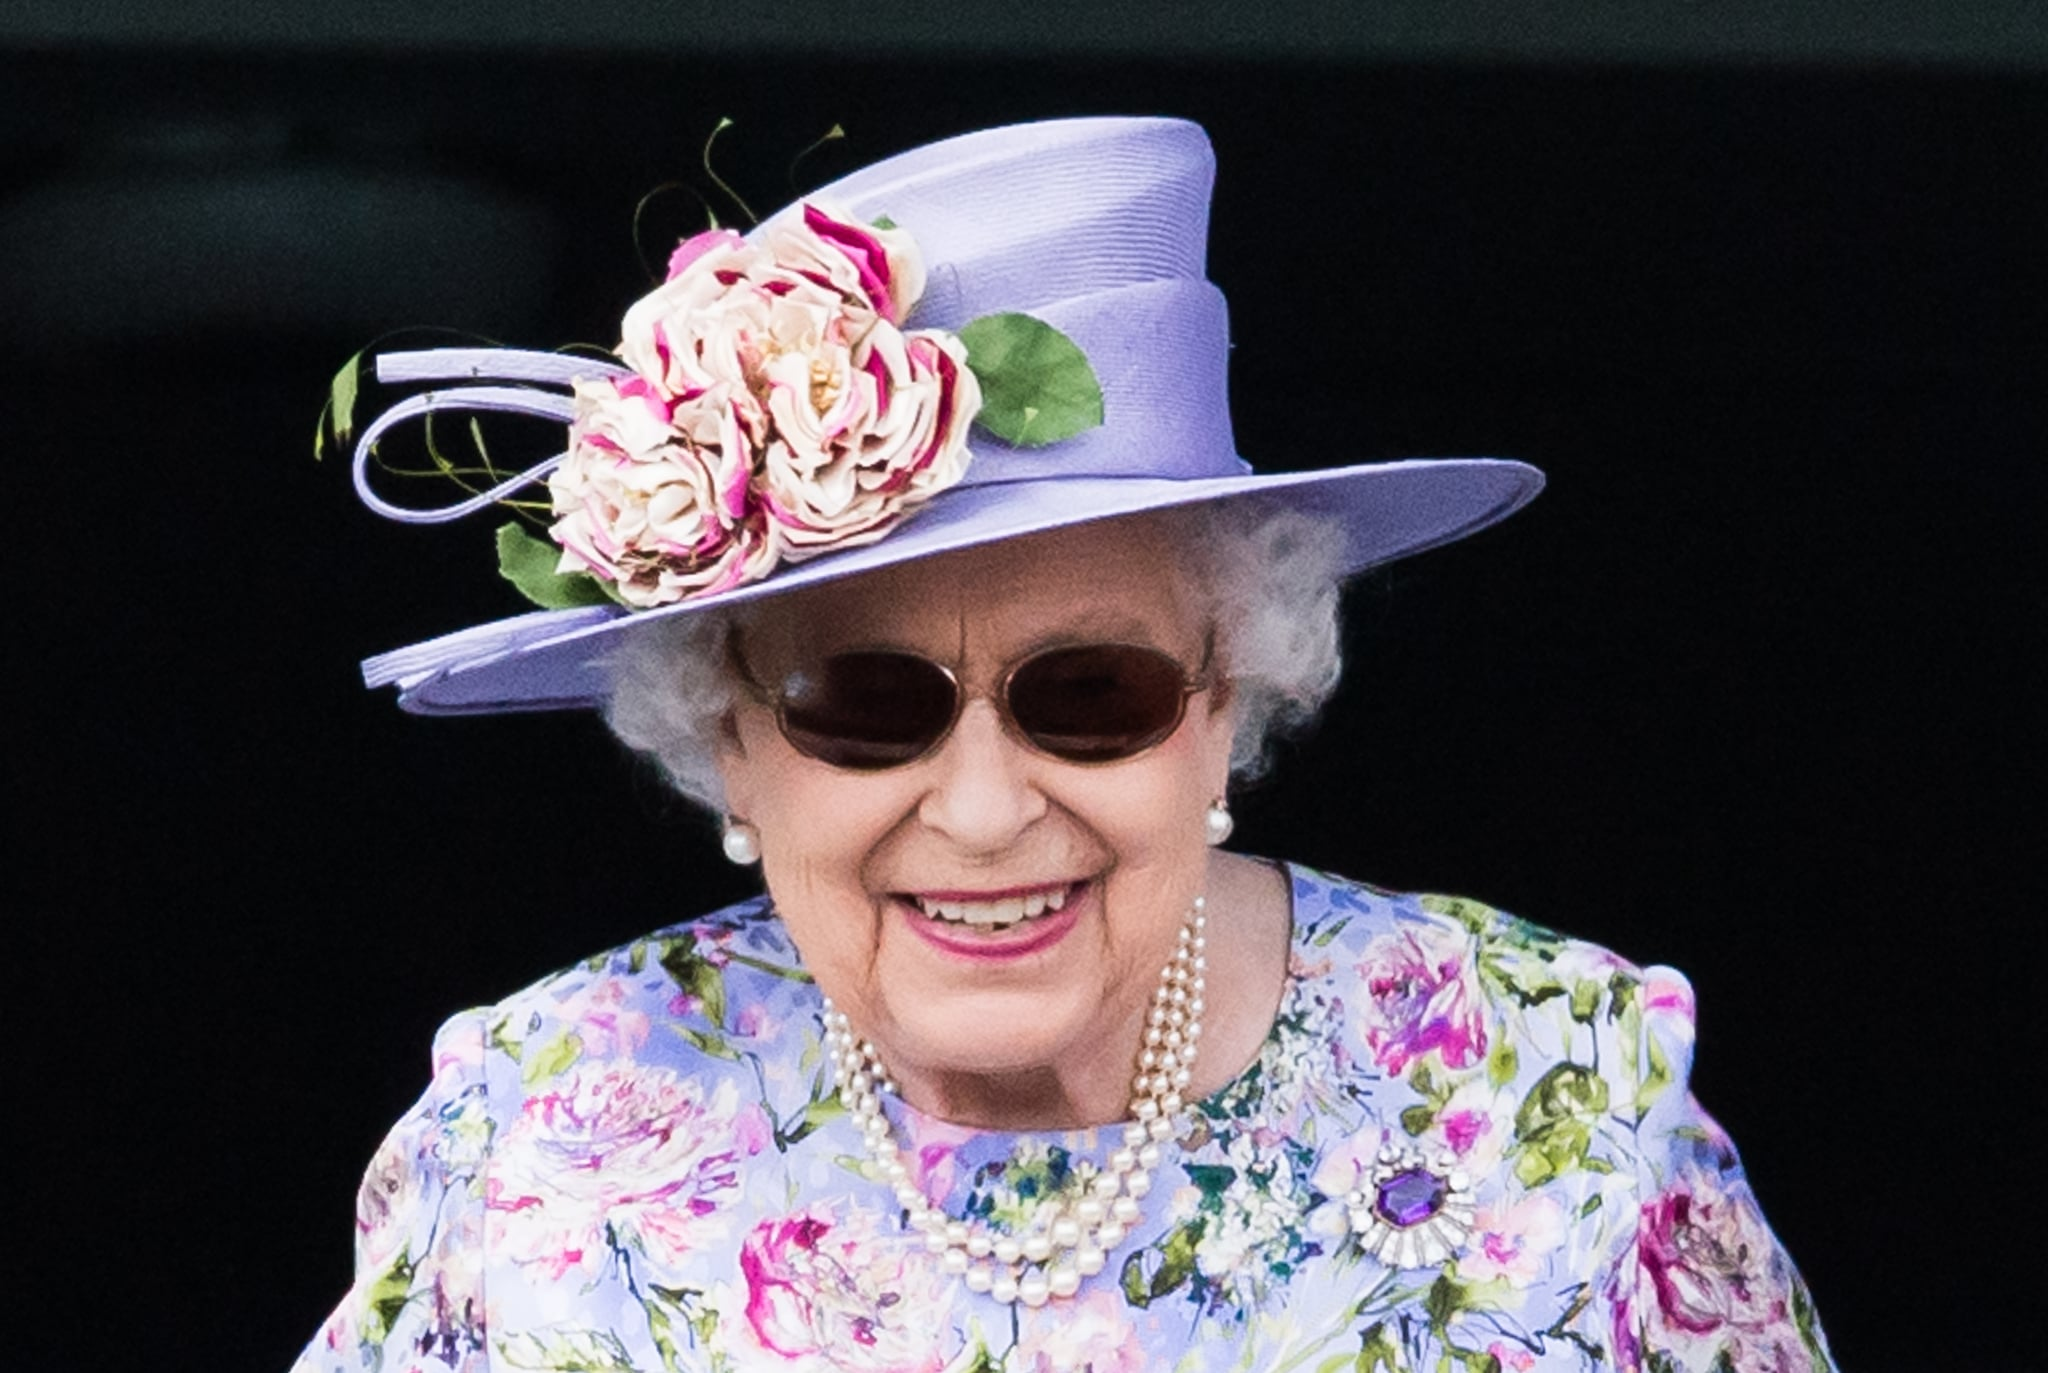 EPSOM, ENGLAND - JUNE 02:  Queen Elizabeth II watches the racing as she attends the Epsom Derby at Epsom Racecourse on June 2, 2018 in Epsom, England.  (Photo by Samir Hussein/Samir Hussein/WireImage)